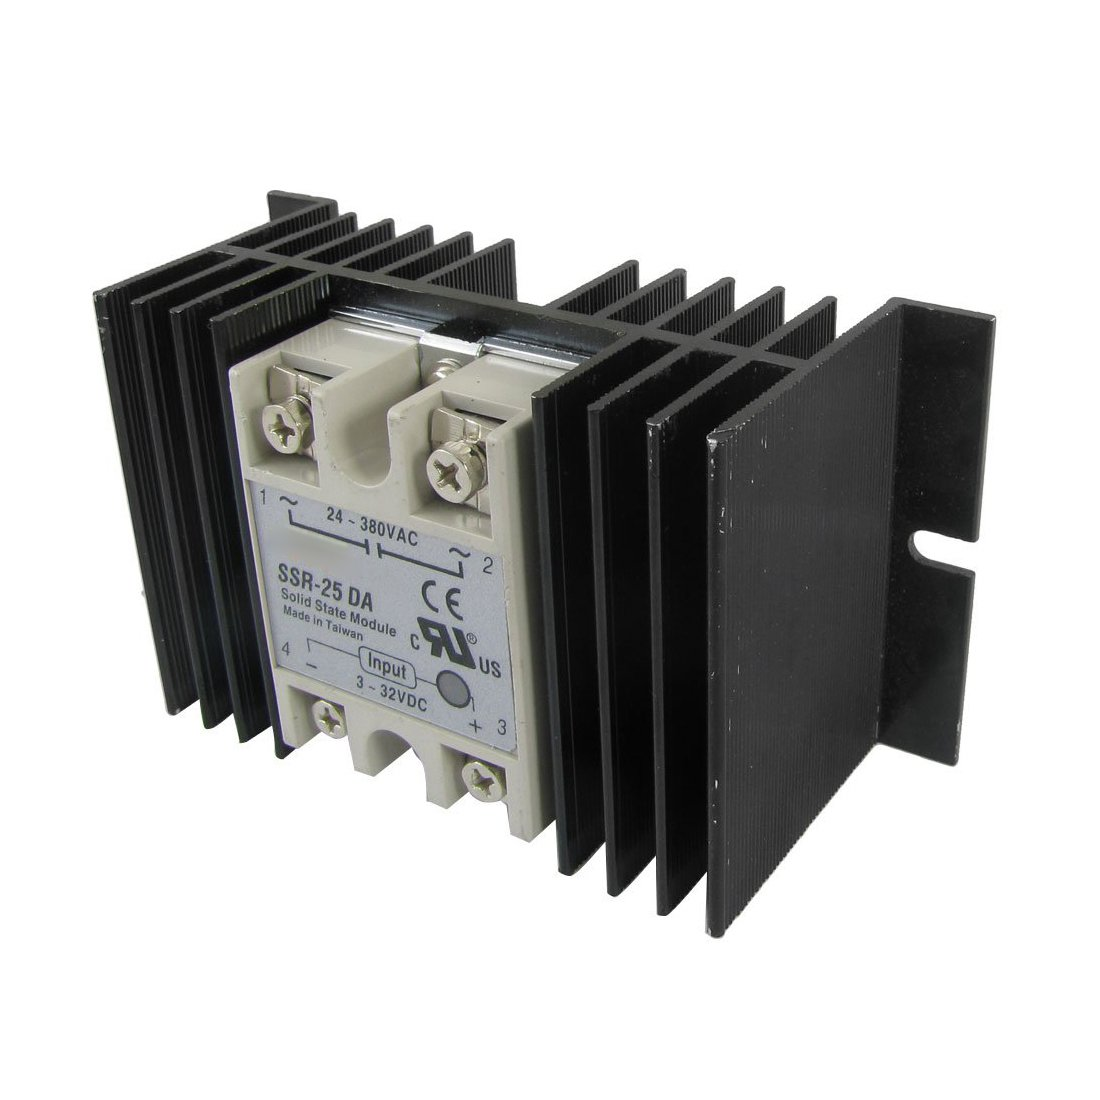 TOOGOO(R) DC to AC Solid State Relay SSR-25DA 25A 3-32V 24-380V + Aluminum Heat Sink by TOOGOO(R)